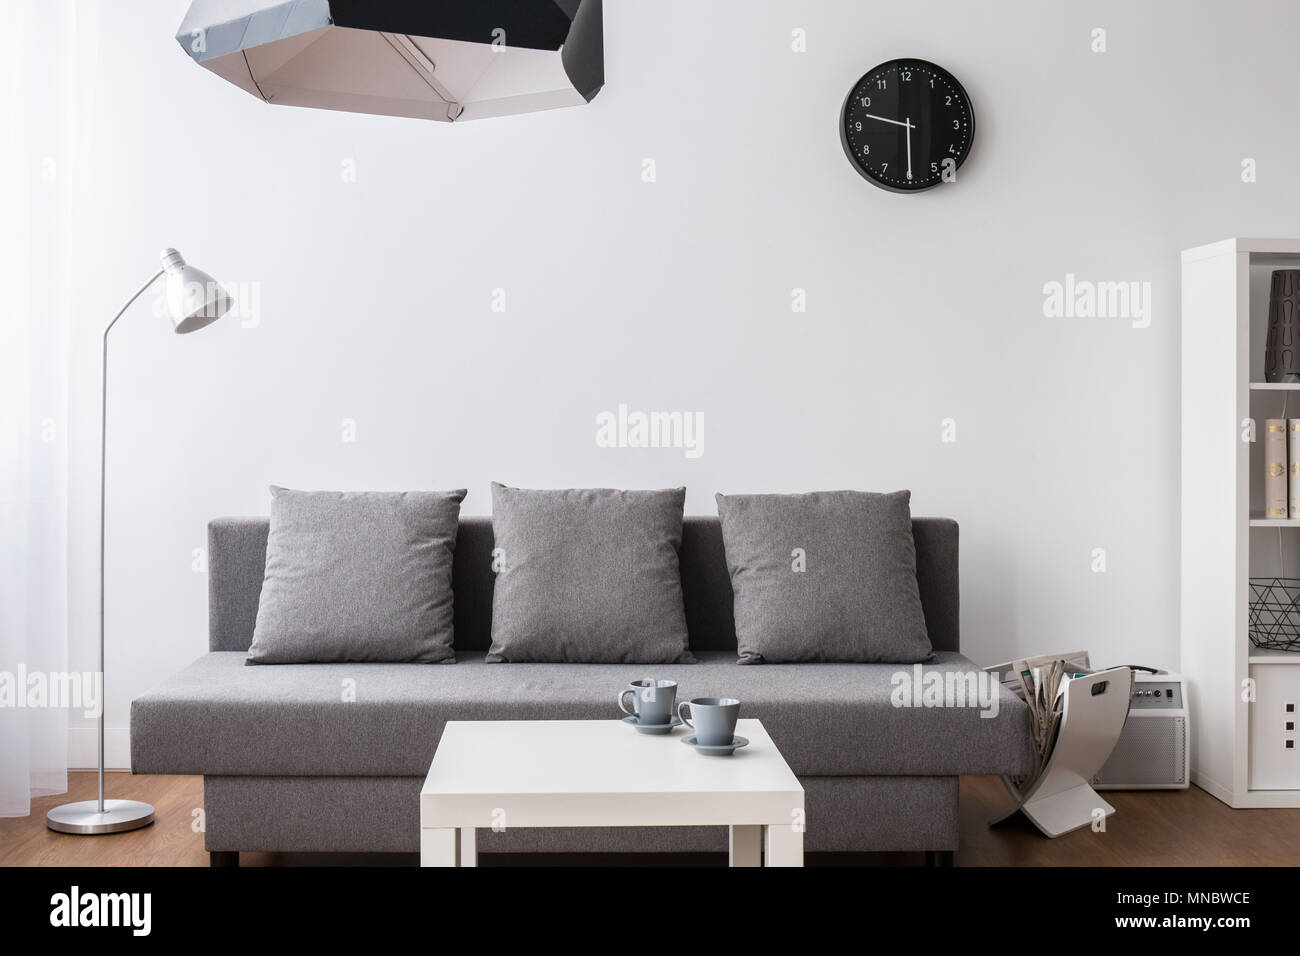 design lampen wohnzimmer top wohnzimmer with design. Black Bedroom Furniture Sets. Home Design Ideas